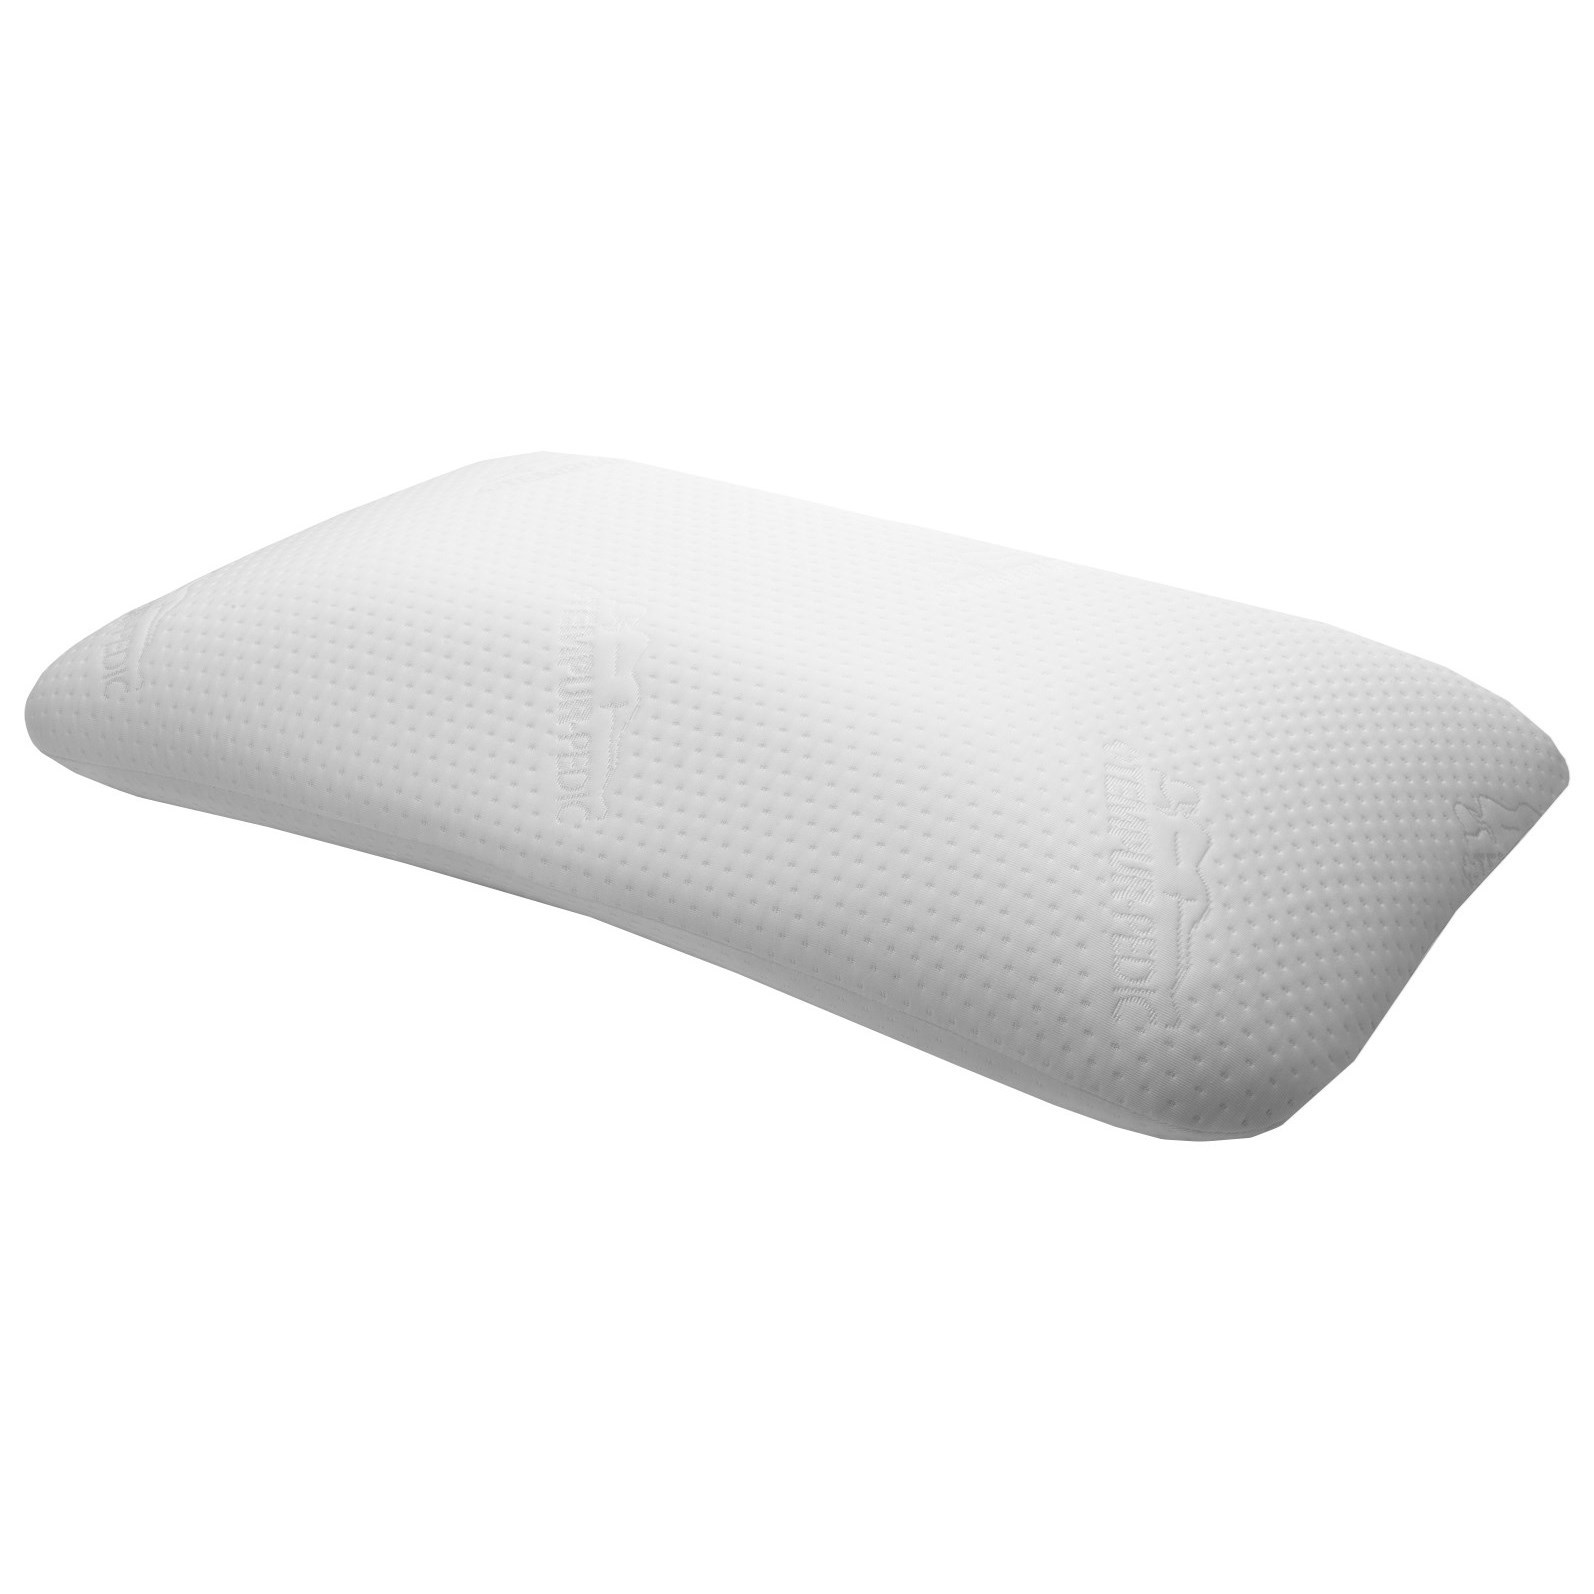 Tempur-Adapt Symphony Pillow Symphony Duel design Standard Size Pillow by Tempur-Pedic® at Jacksonville Furniture Mart